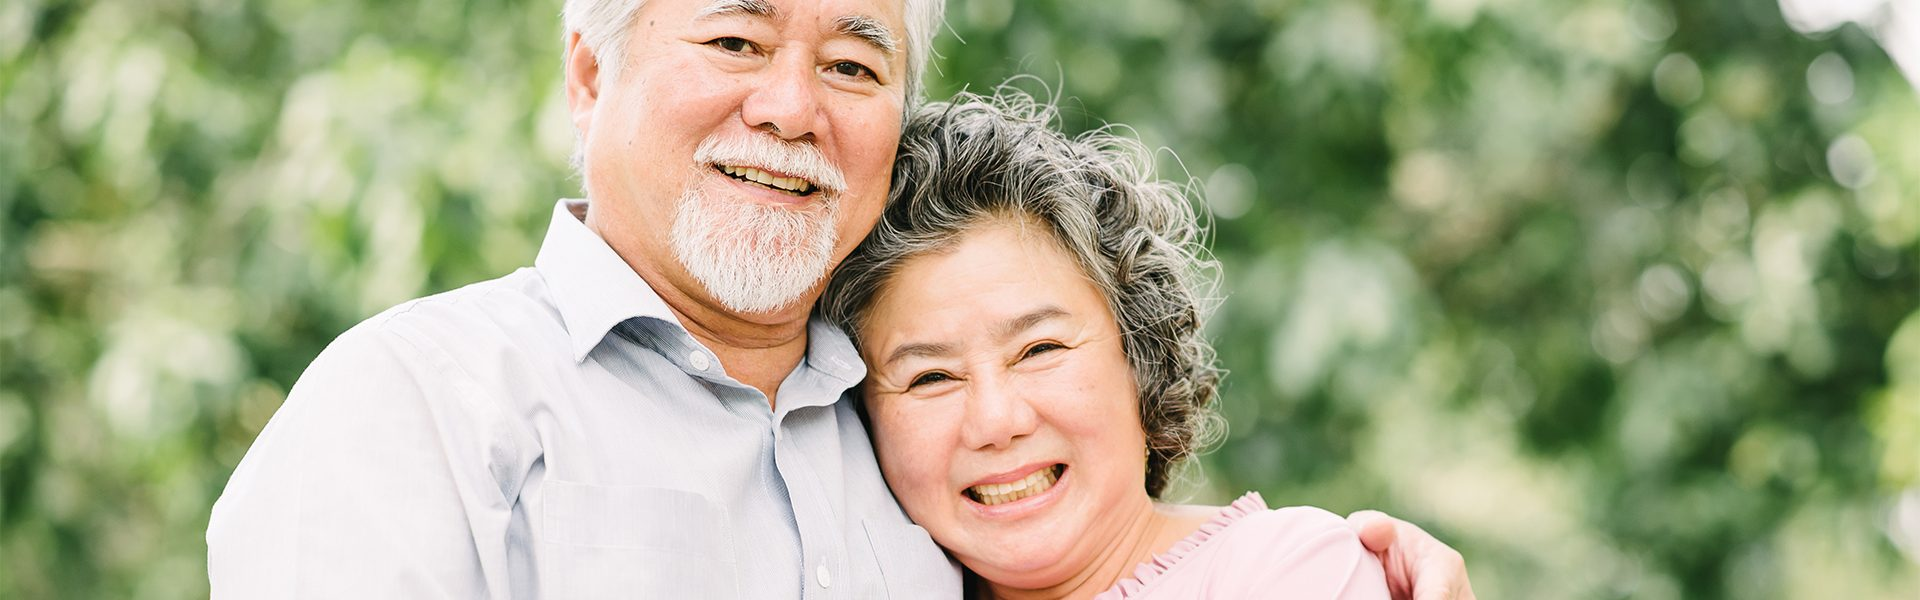 5 Big Benefits of Dental Implants